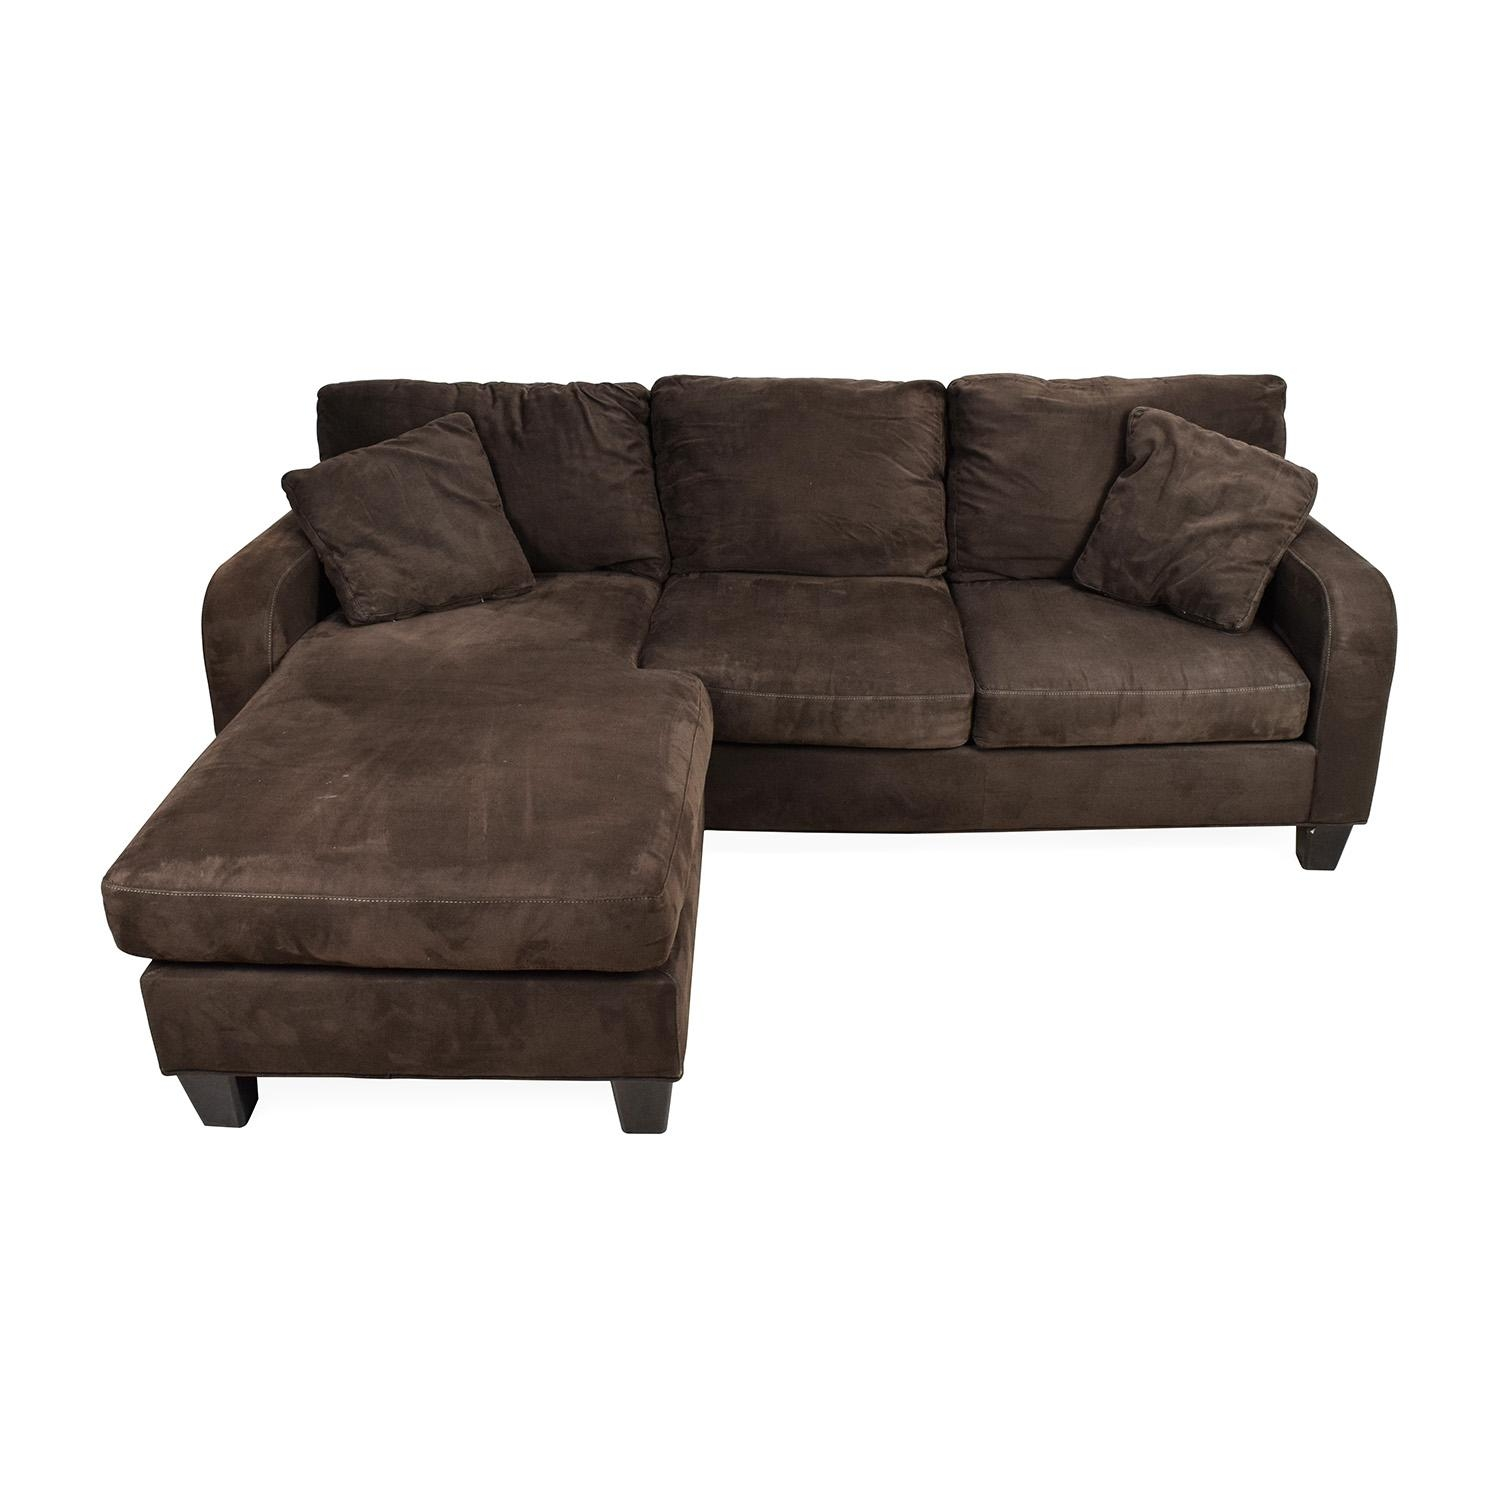 70 Off Cindy Crawford Home Bailey Microfiber With Sofas